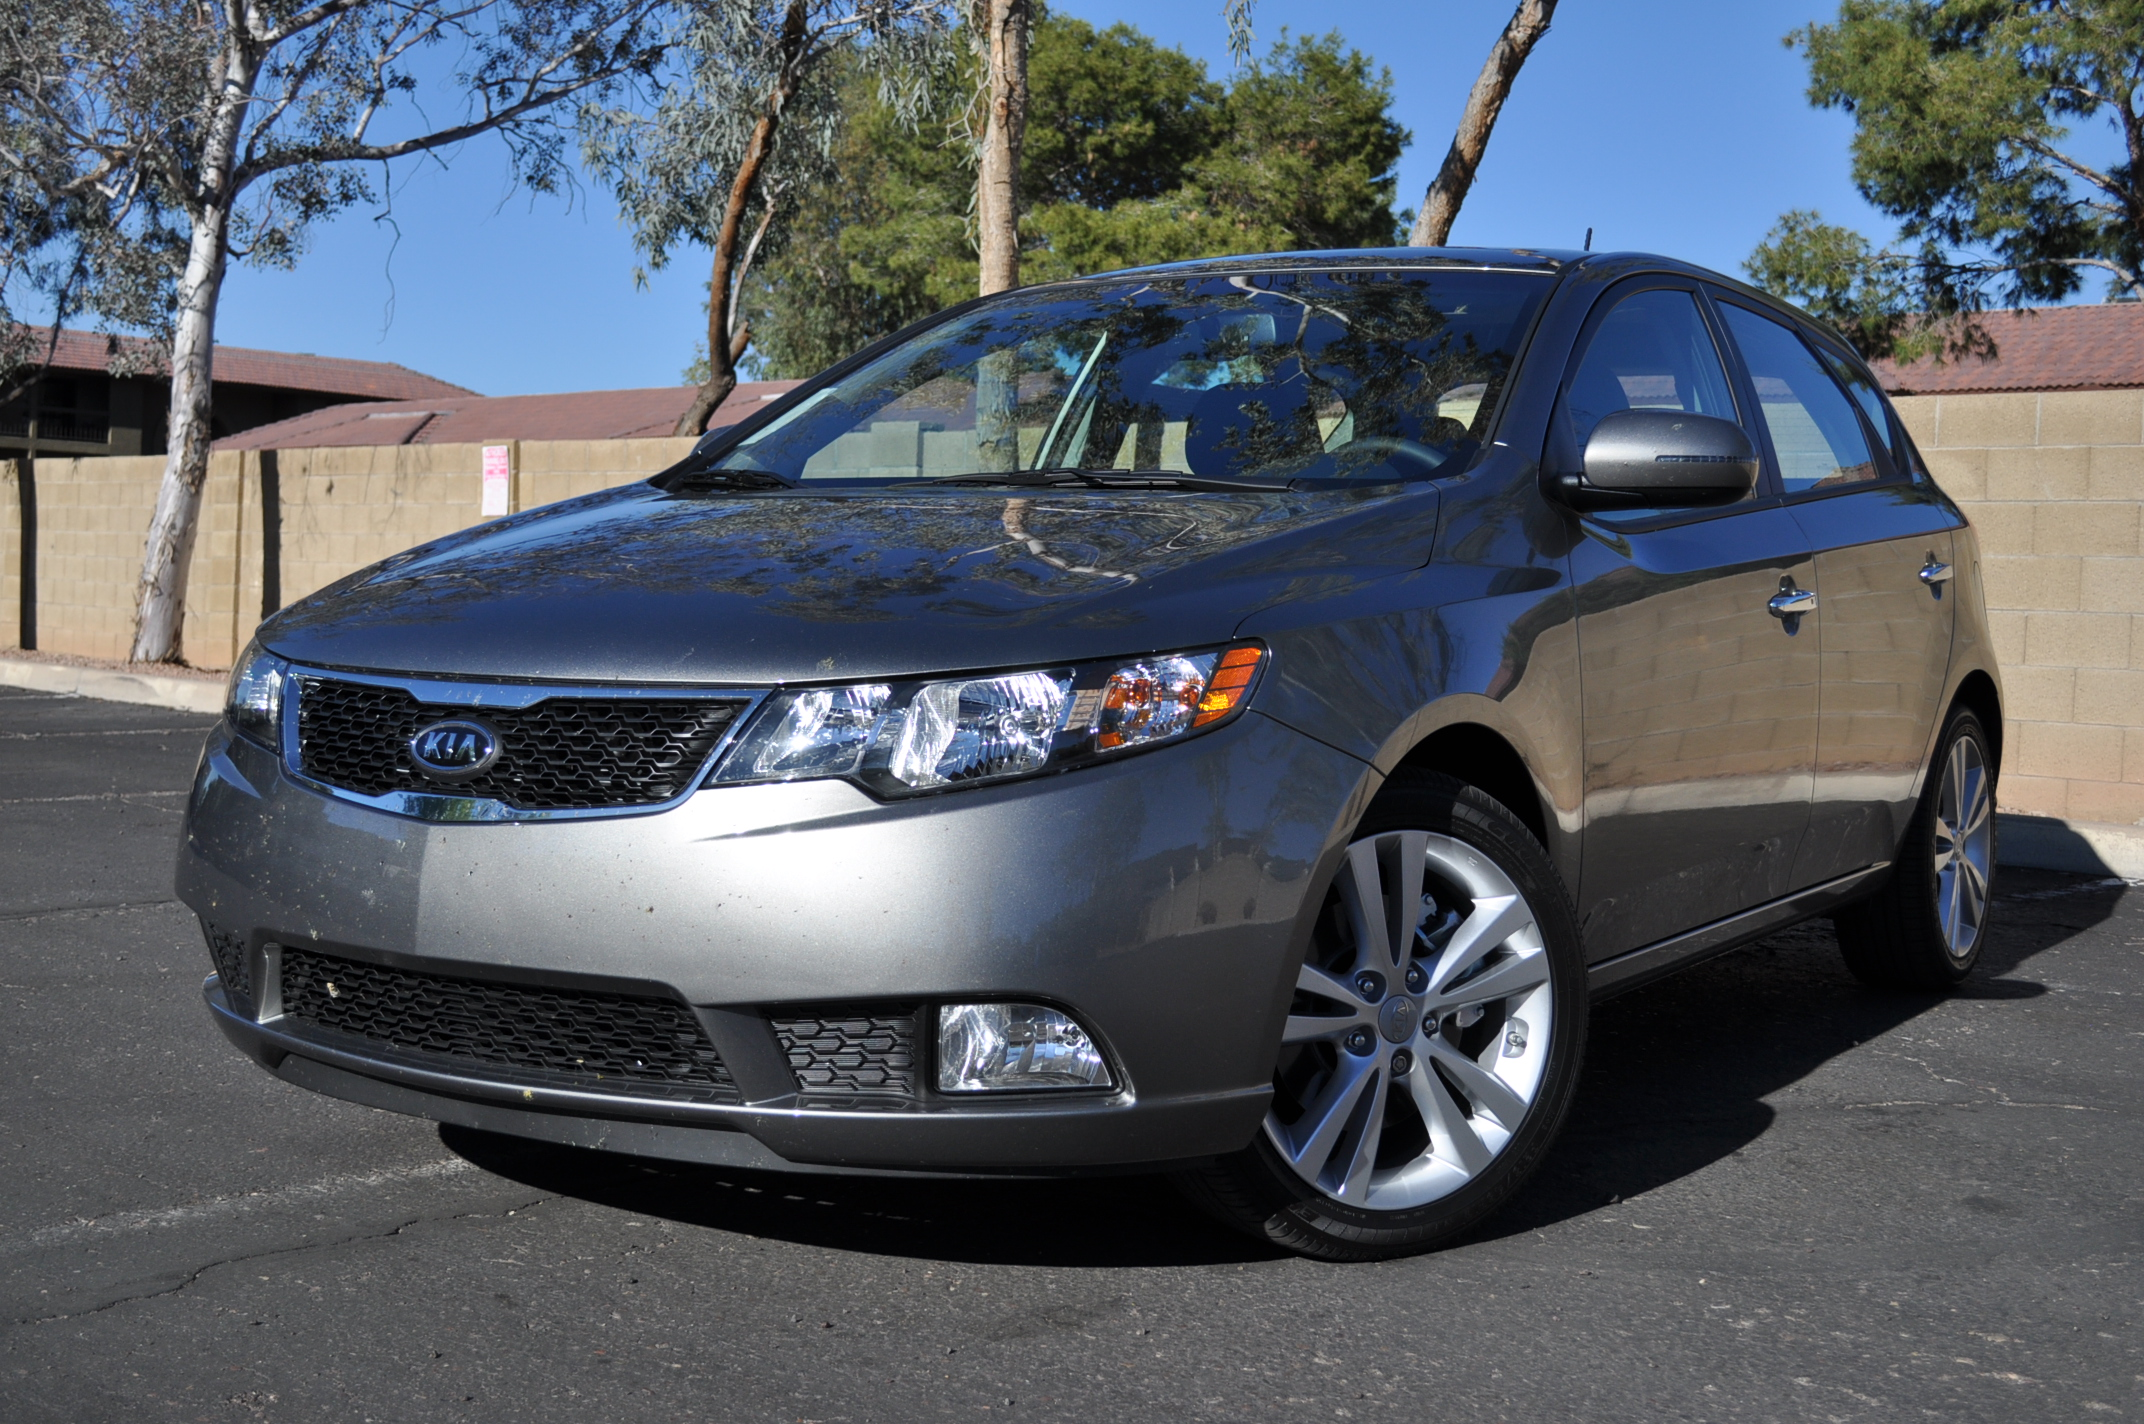 Bmw Of Fresno >> 2011 Kia Forte 5-Door SX: First Drive